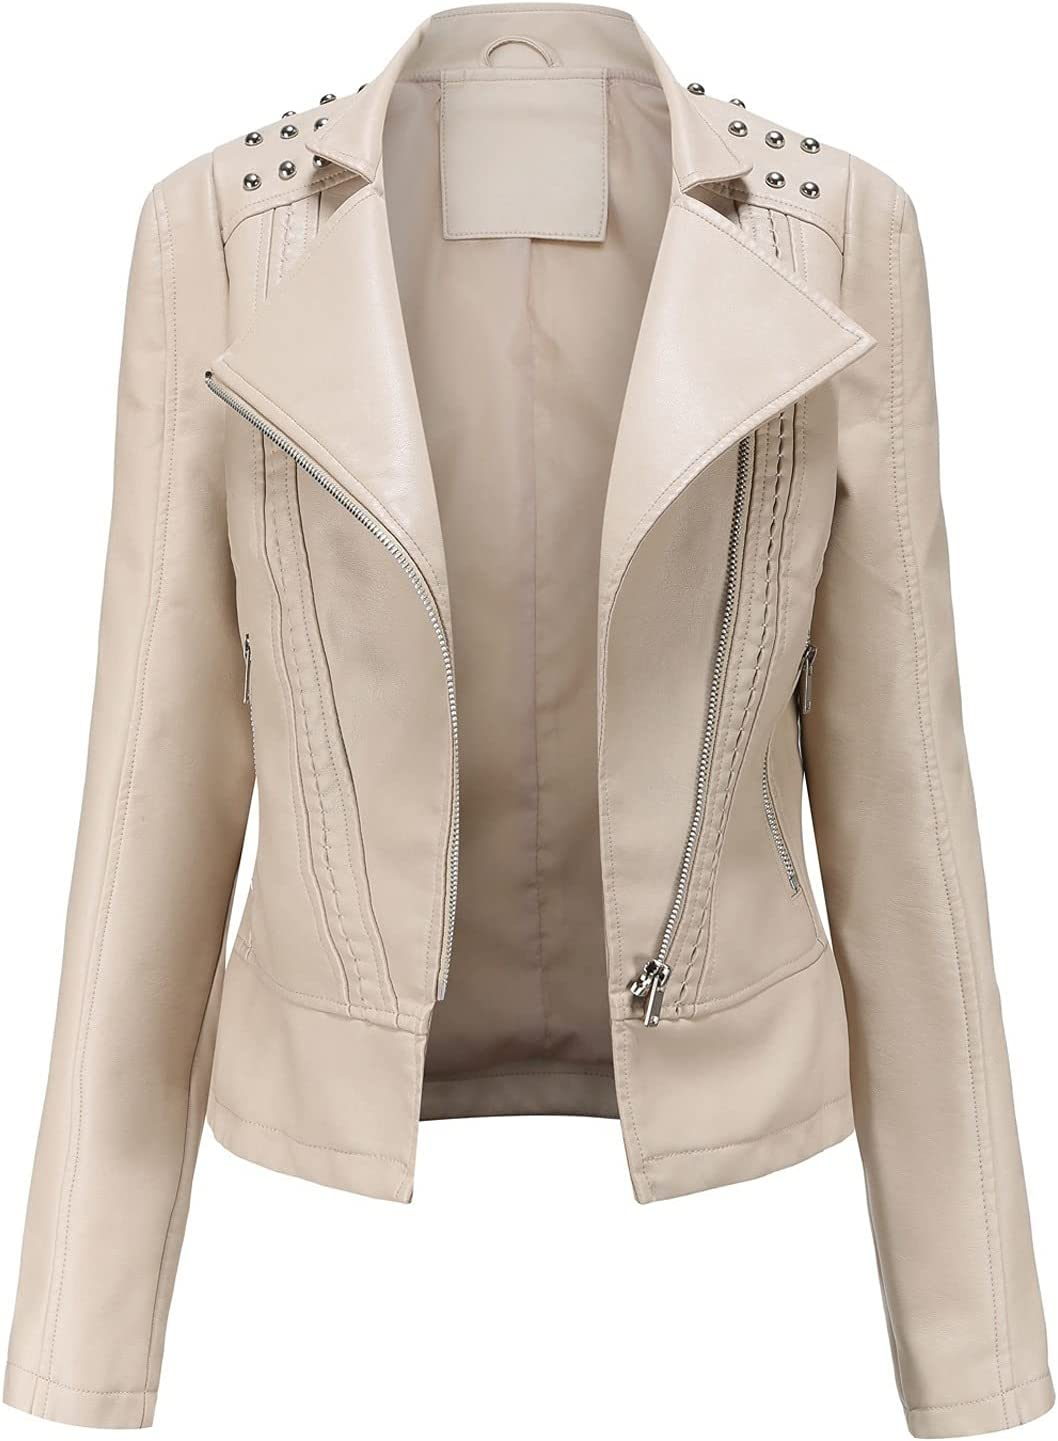 CRMY Women's Short Jacket Outlet SALE Made 40% OFF Cheap Sale of Motorcycl Faux Leather